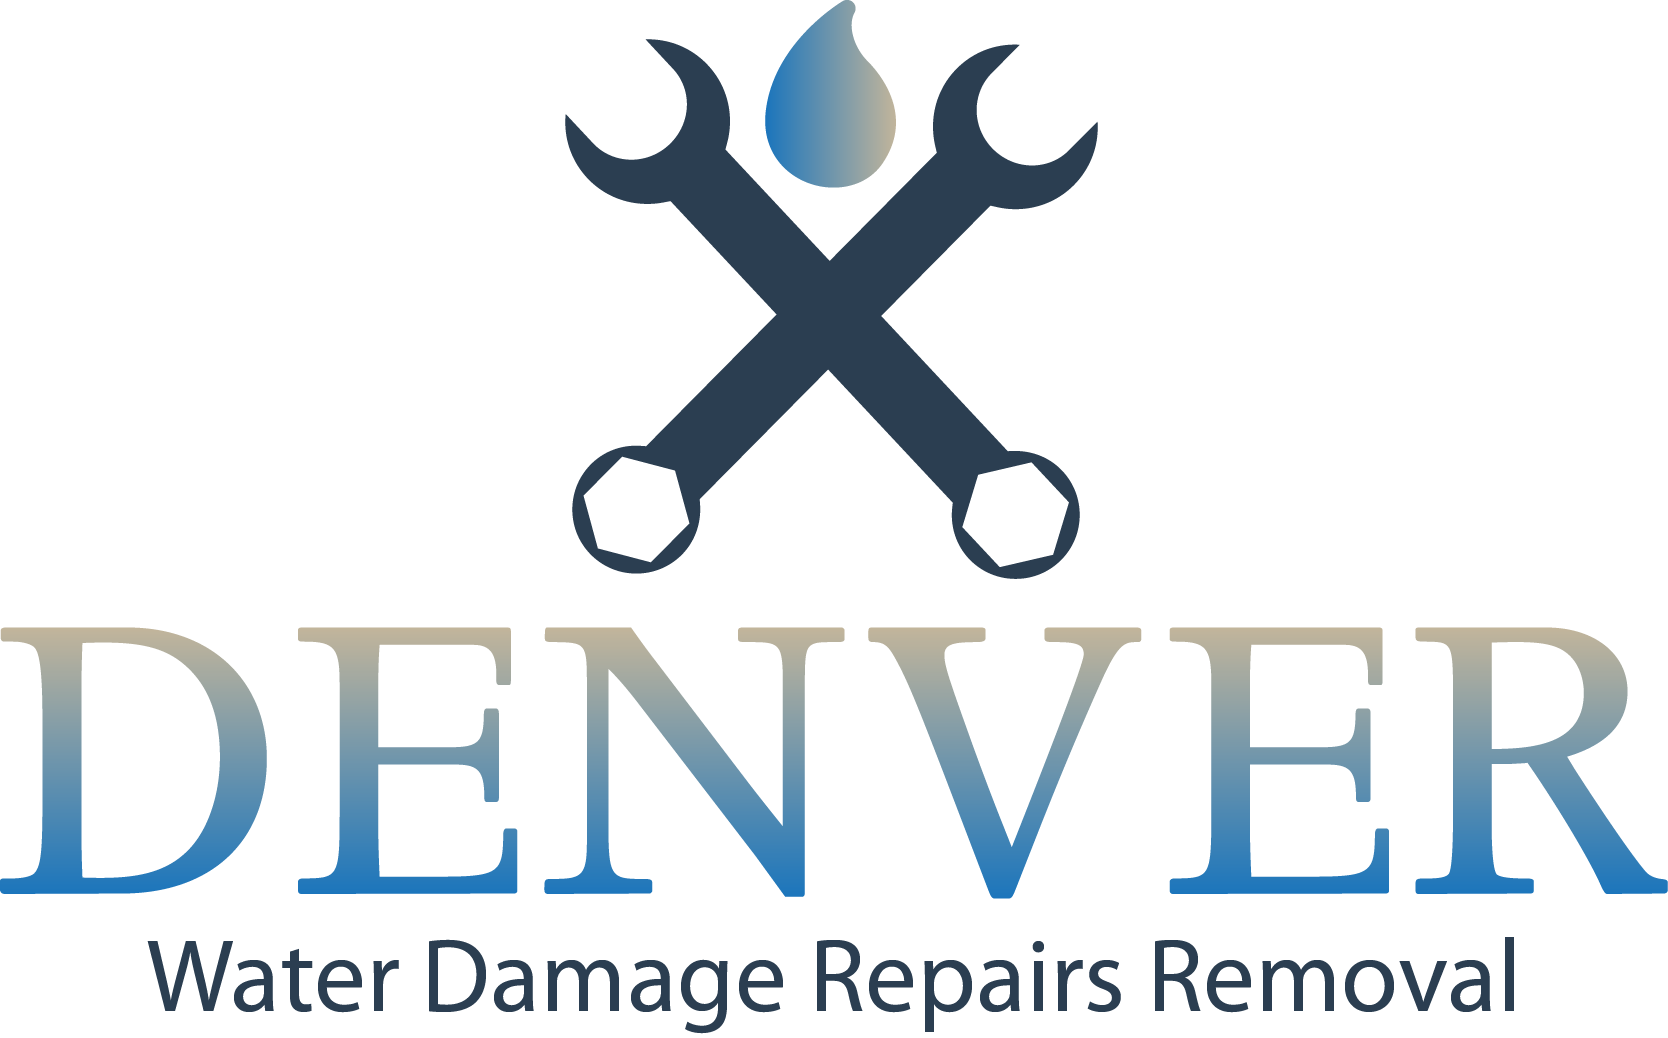 Emergency Water Damage Restoration Denver services expand into Lakewood CO